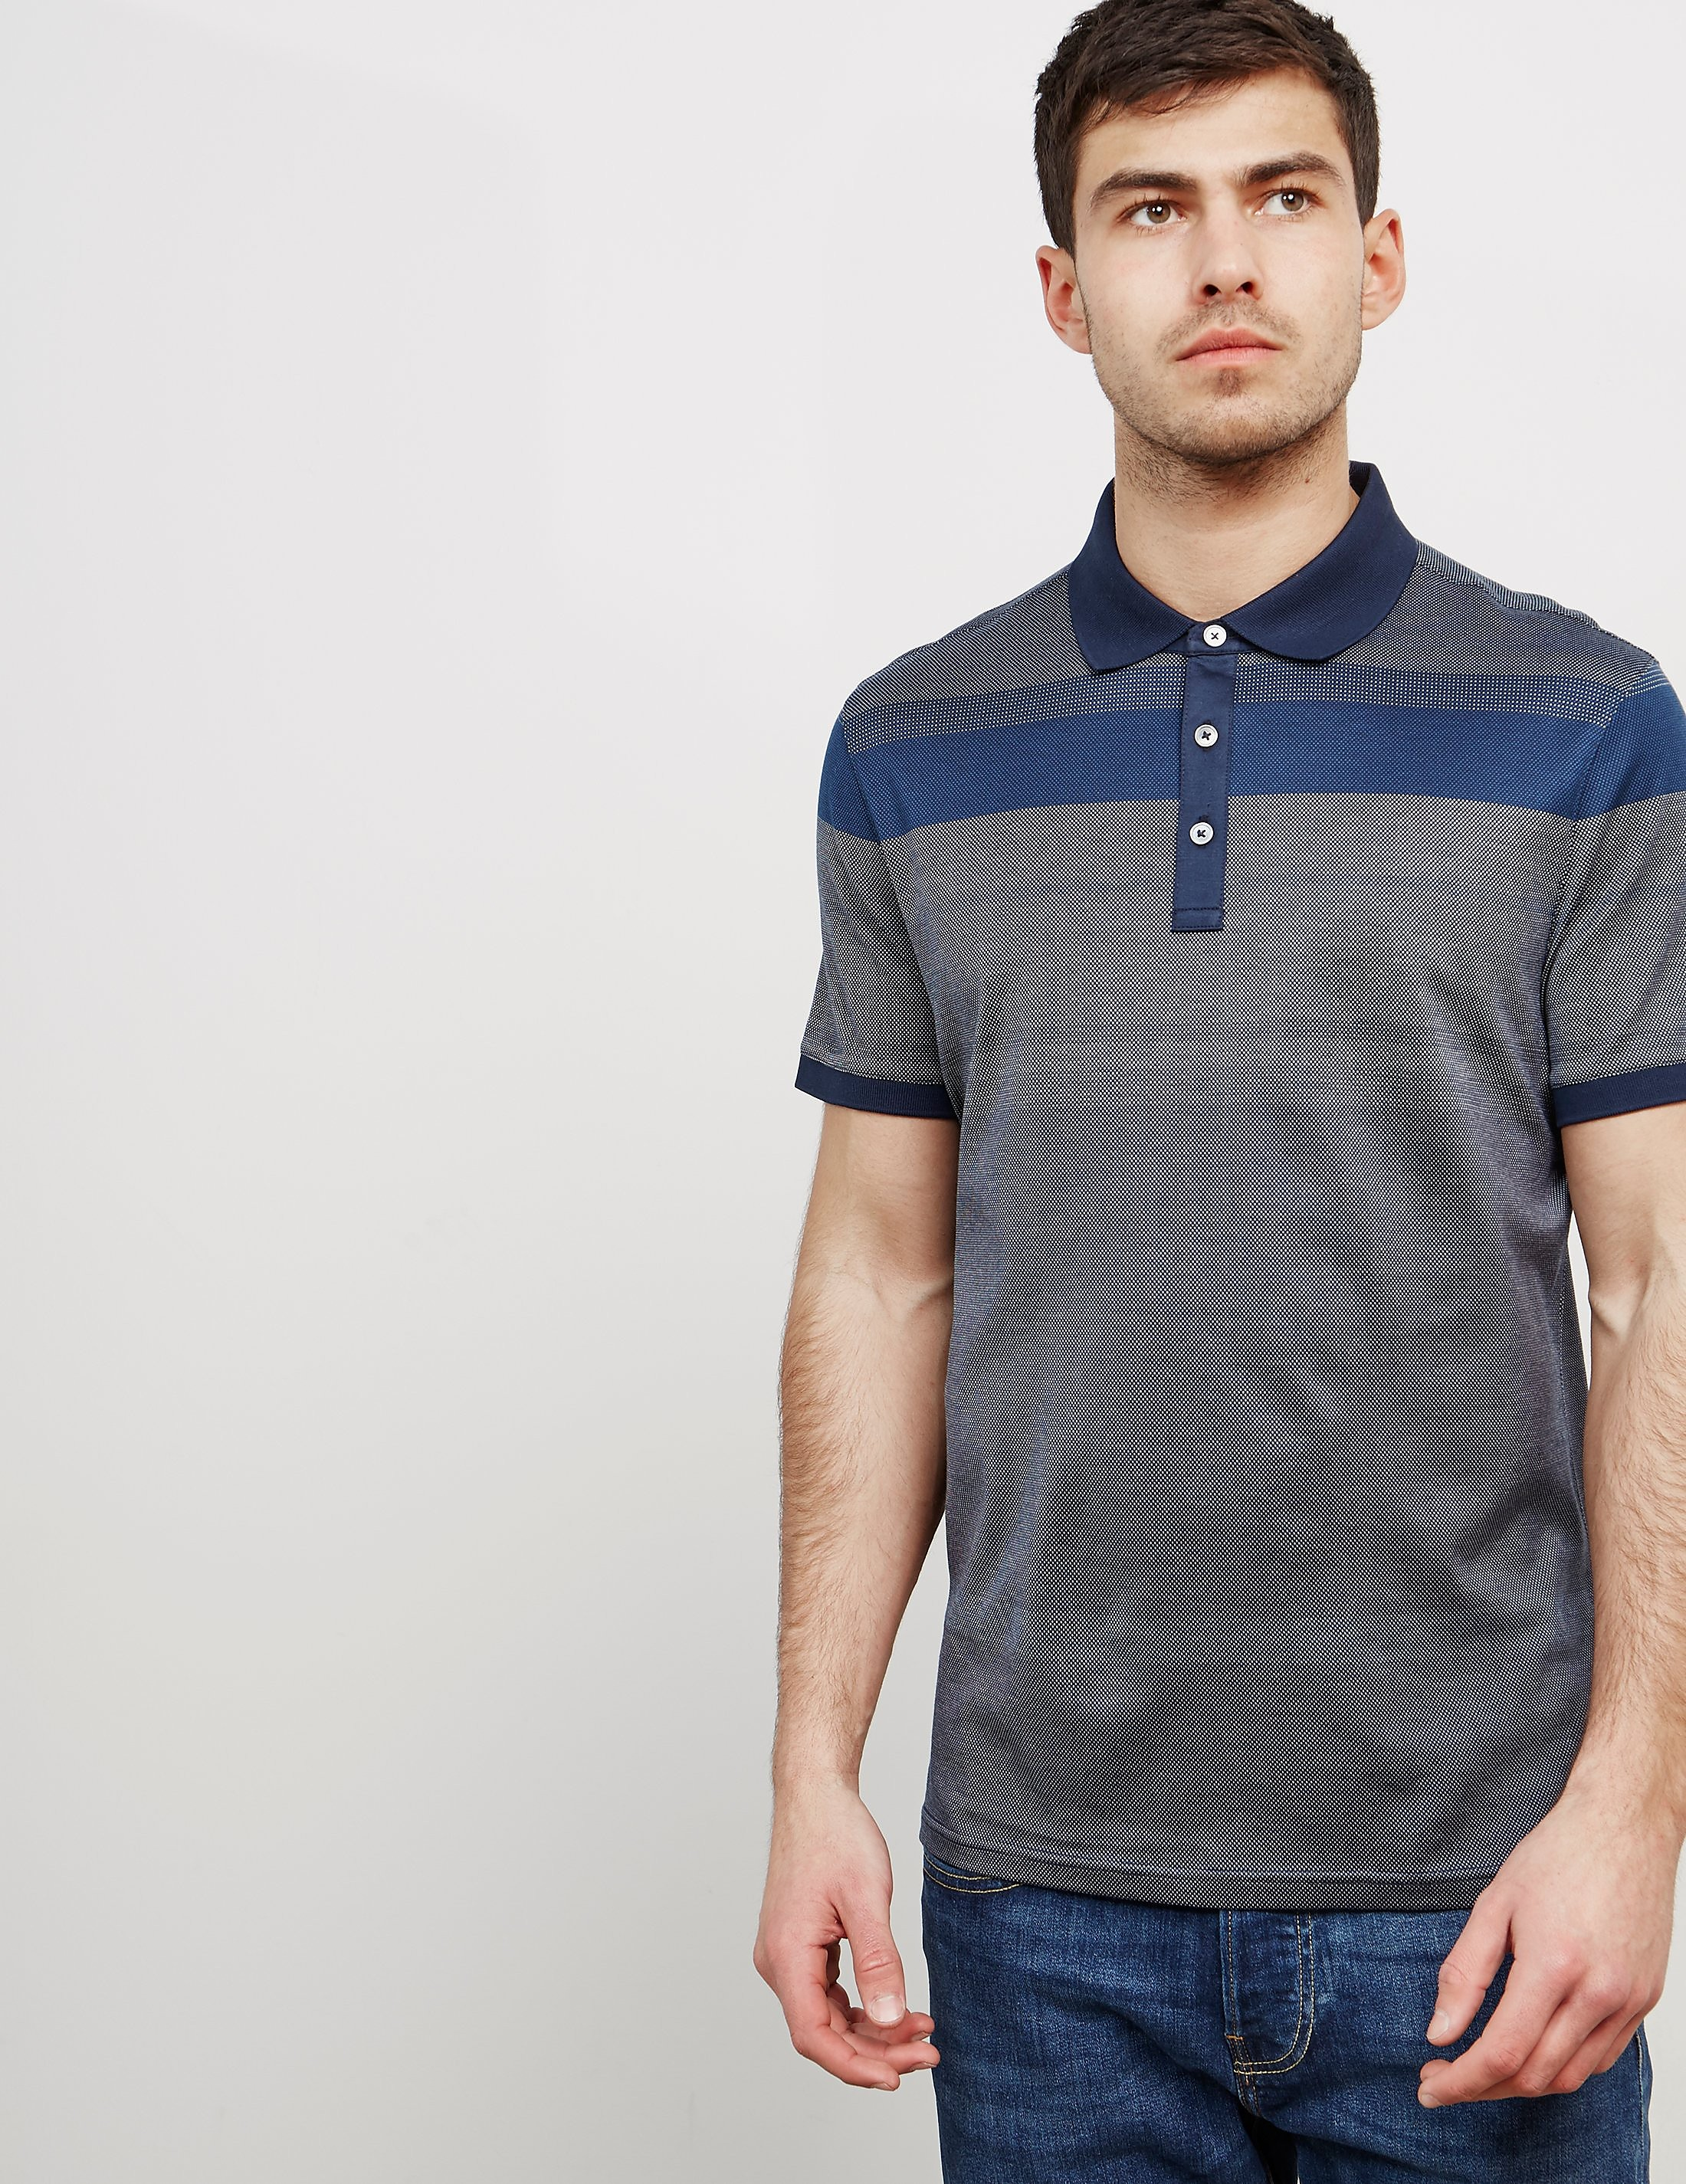 Michael Kors Stripe Short Sleeve Polo Shirt